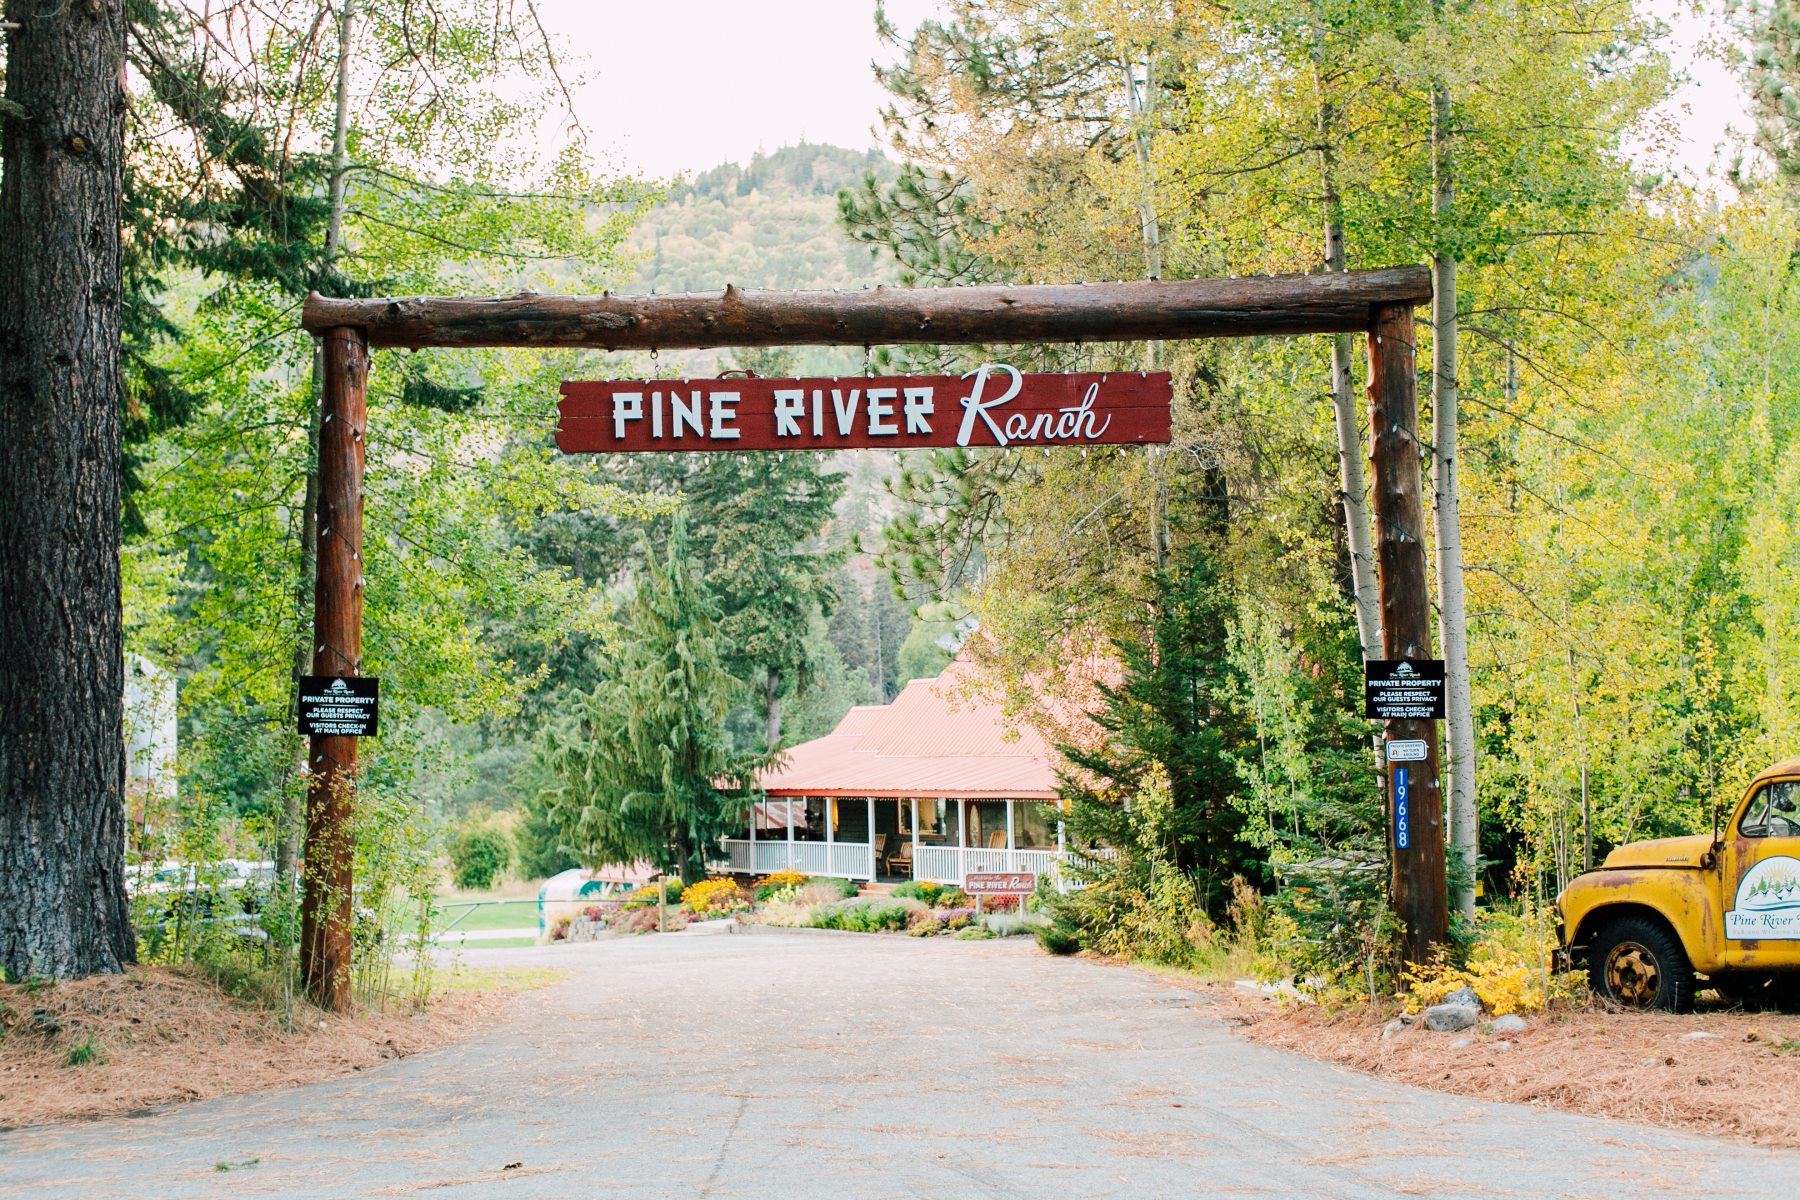 Pine River Ranch Main Entrance